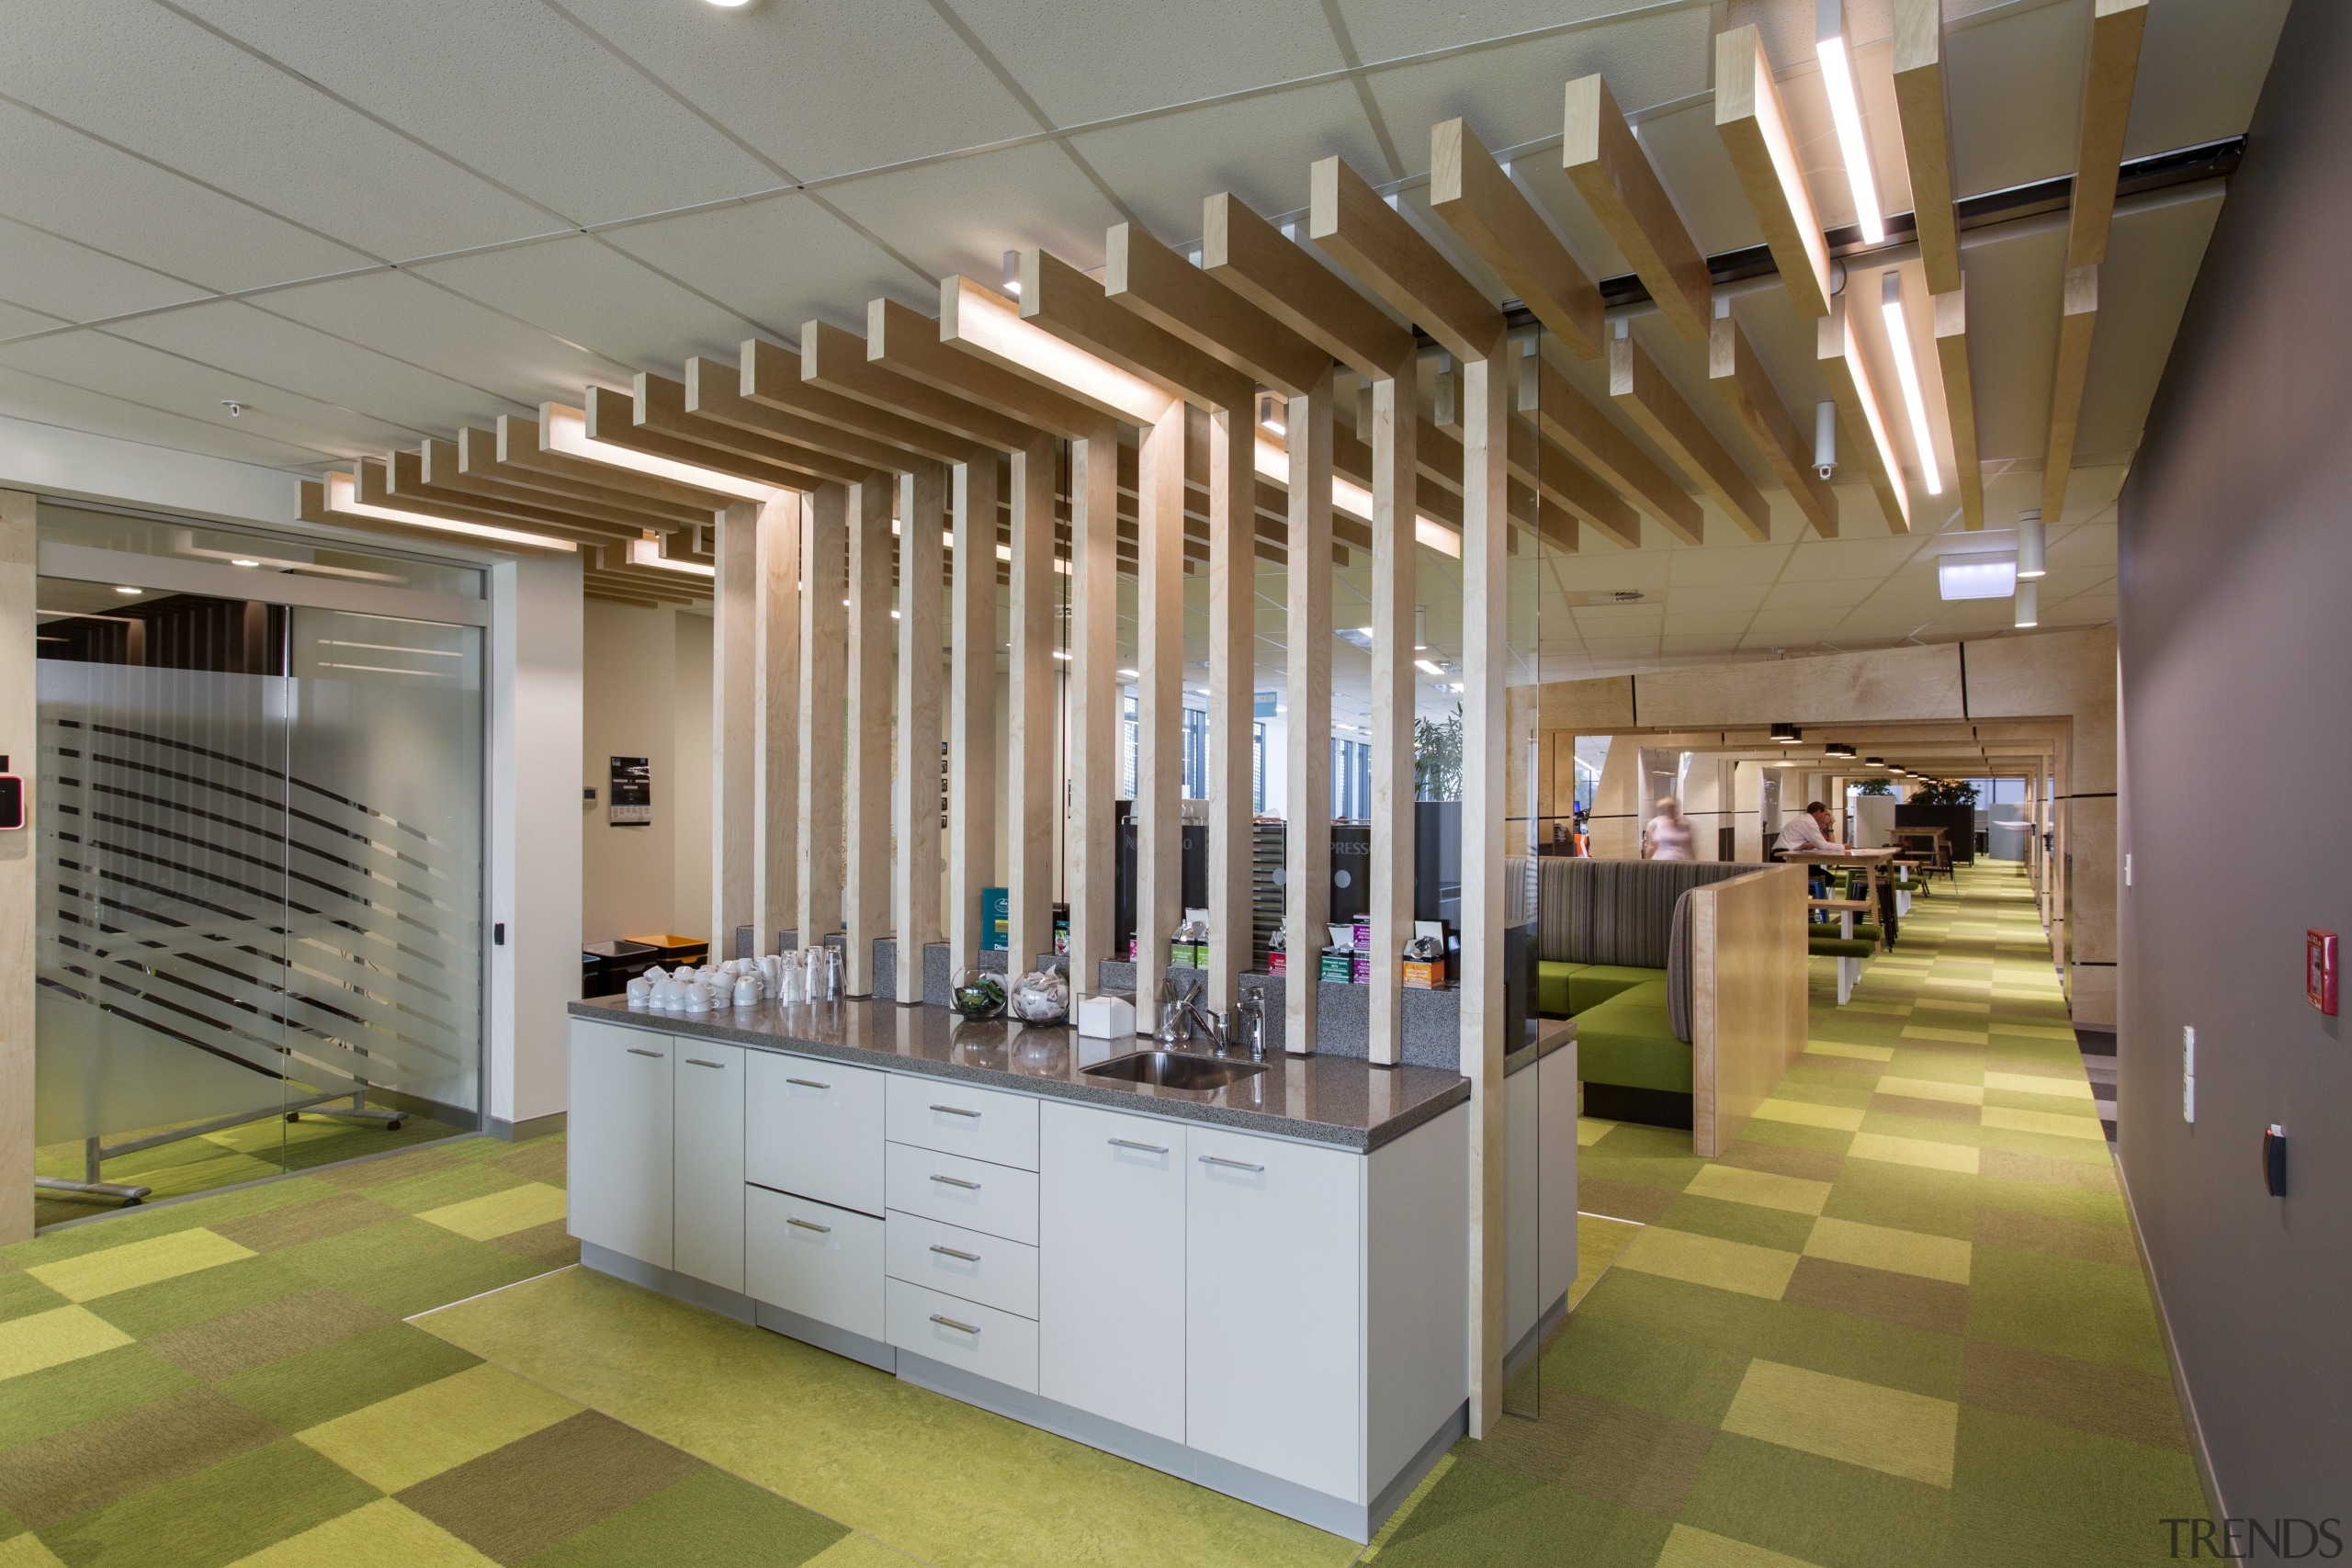 As part of the interior fit-out of the ceiling, daylighting, institution, interior design, lobby, gray, brown